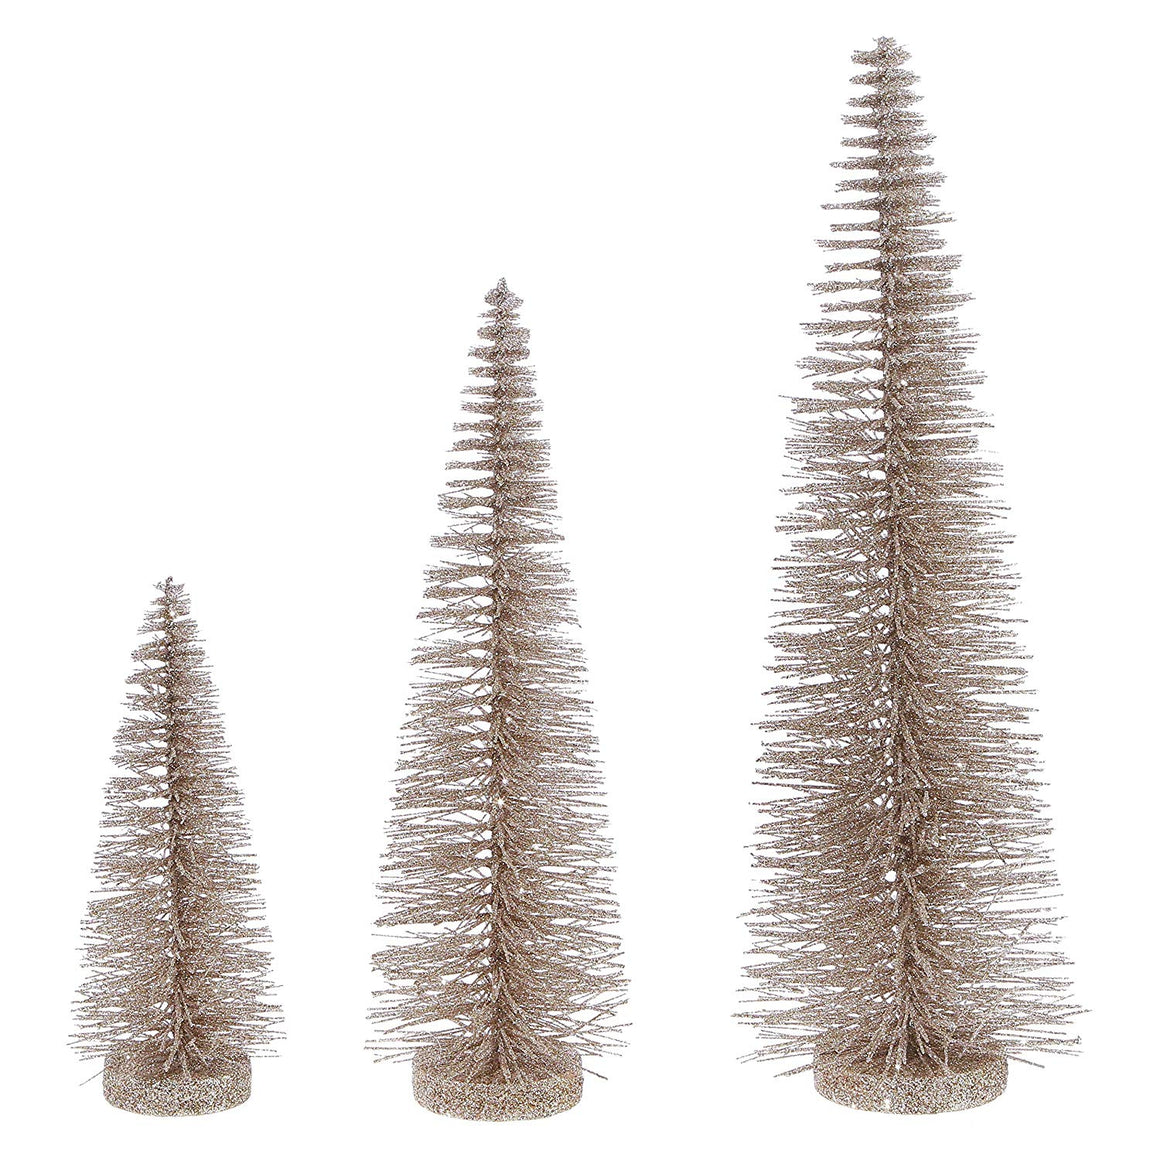 Christmas Bottle Brush Trees Set of 3 in Sparkling Champagne Gold, 17.5 Inches,14 Inches and 9 Inches High